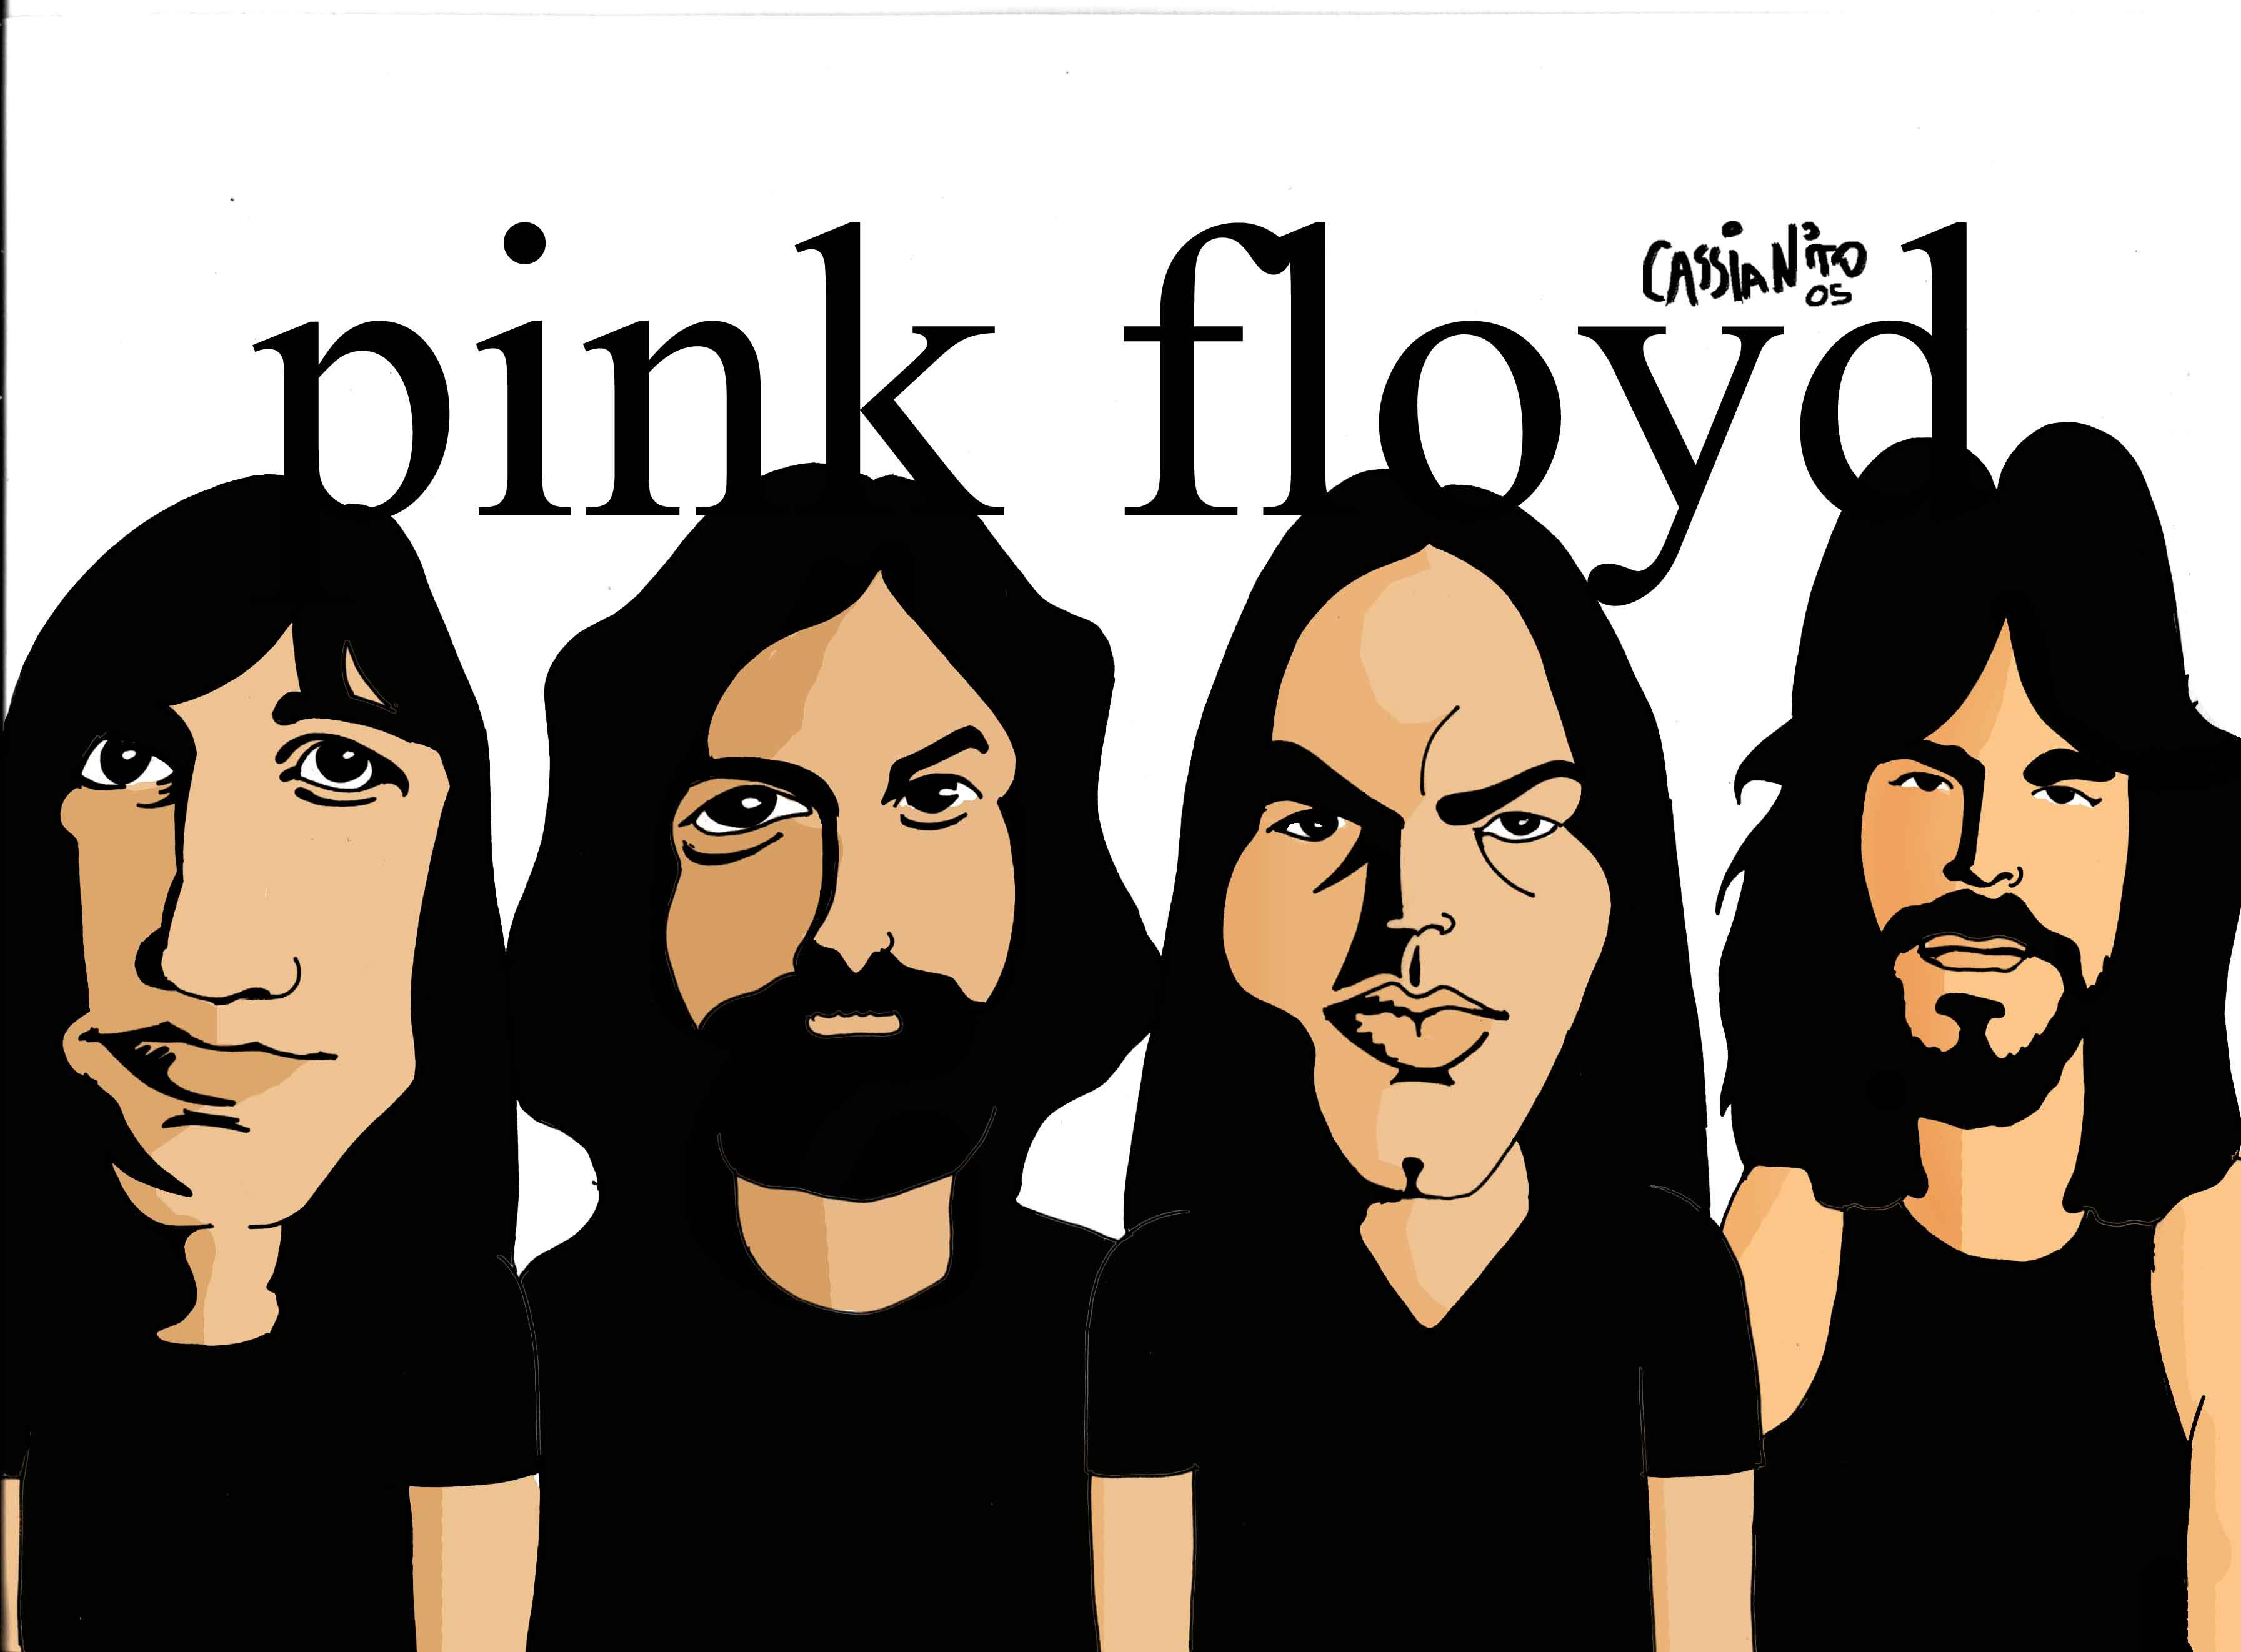 pink floyd by cbaseggio